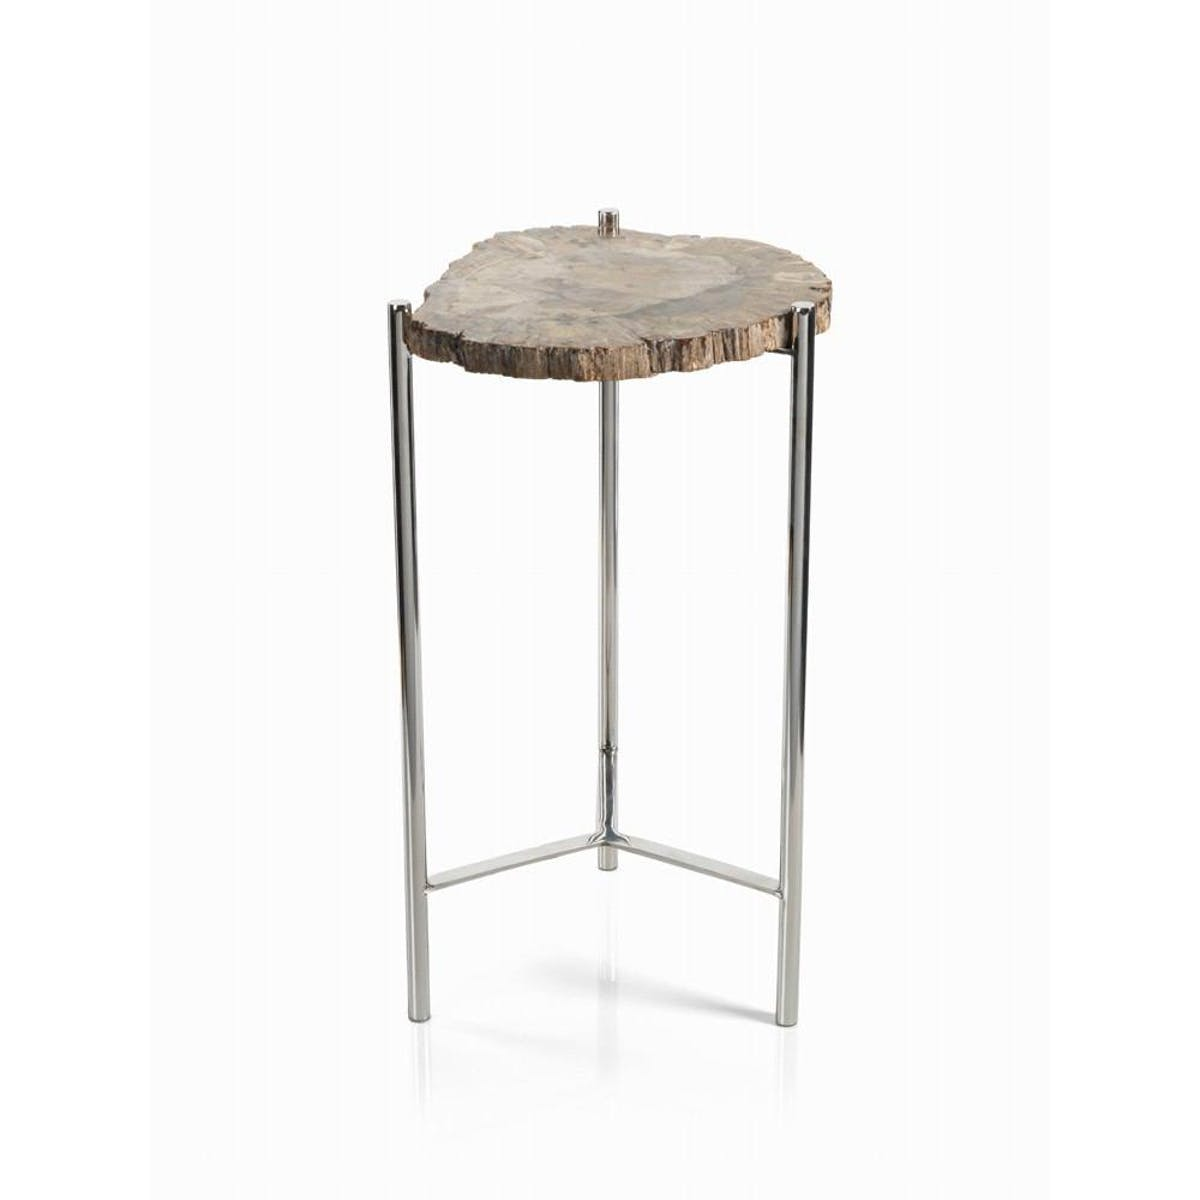 zodax pierce petrified wood accent table inch tall modish outdoor hand painted dress oriental furniture lamps west elm telescoping lamp white and grey marble coffee designer